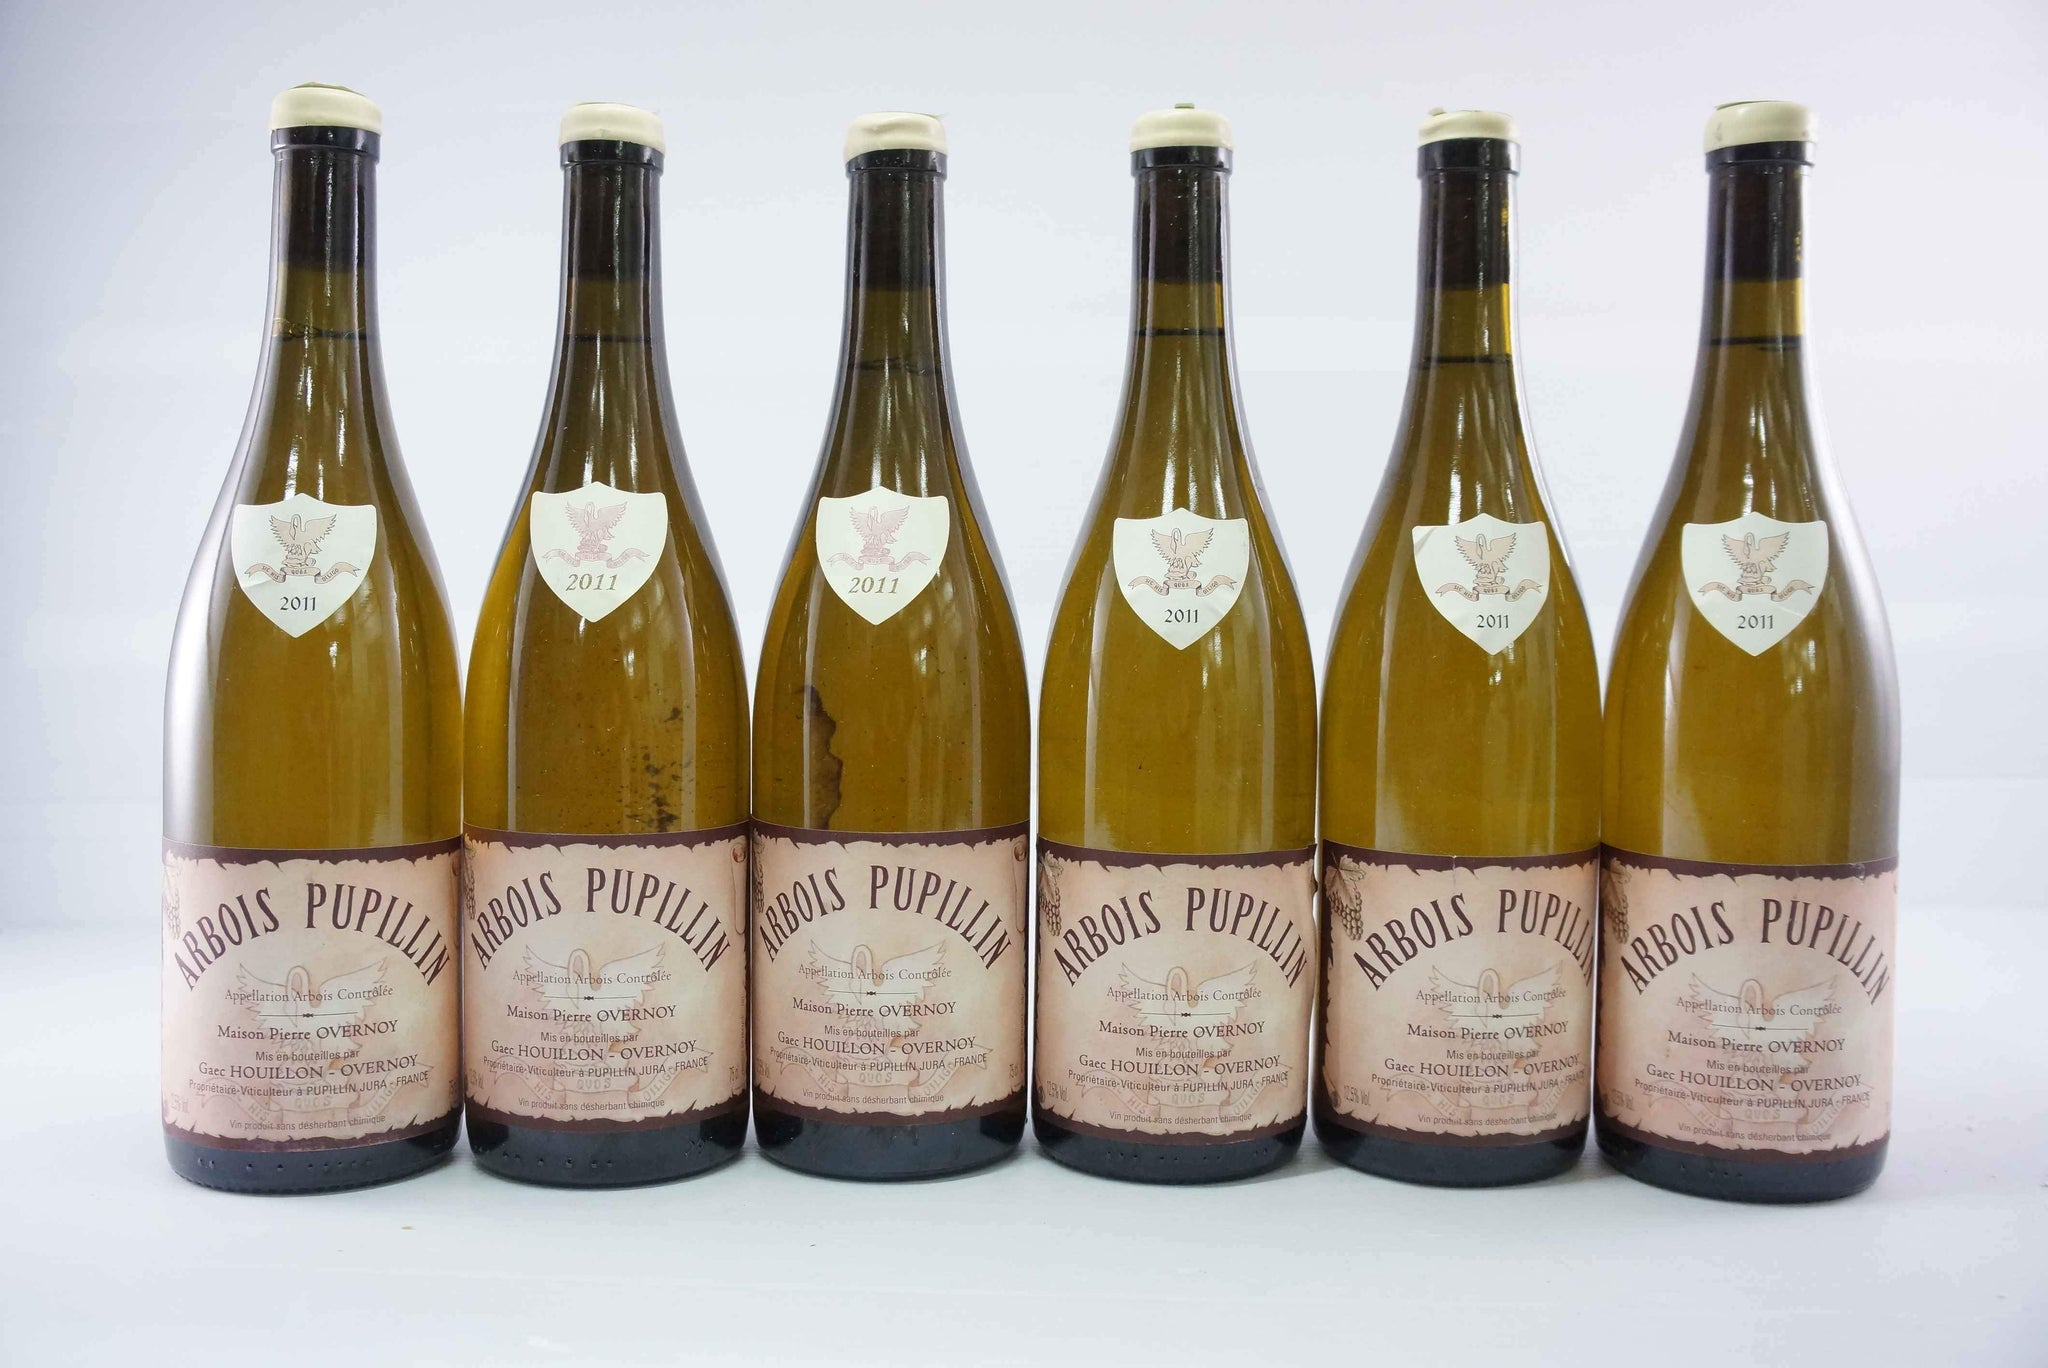 Pierre Overnoy Arbois Pupillin Chardonnay 2011